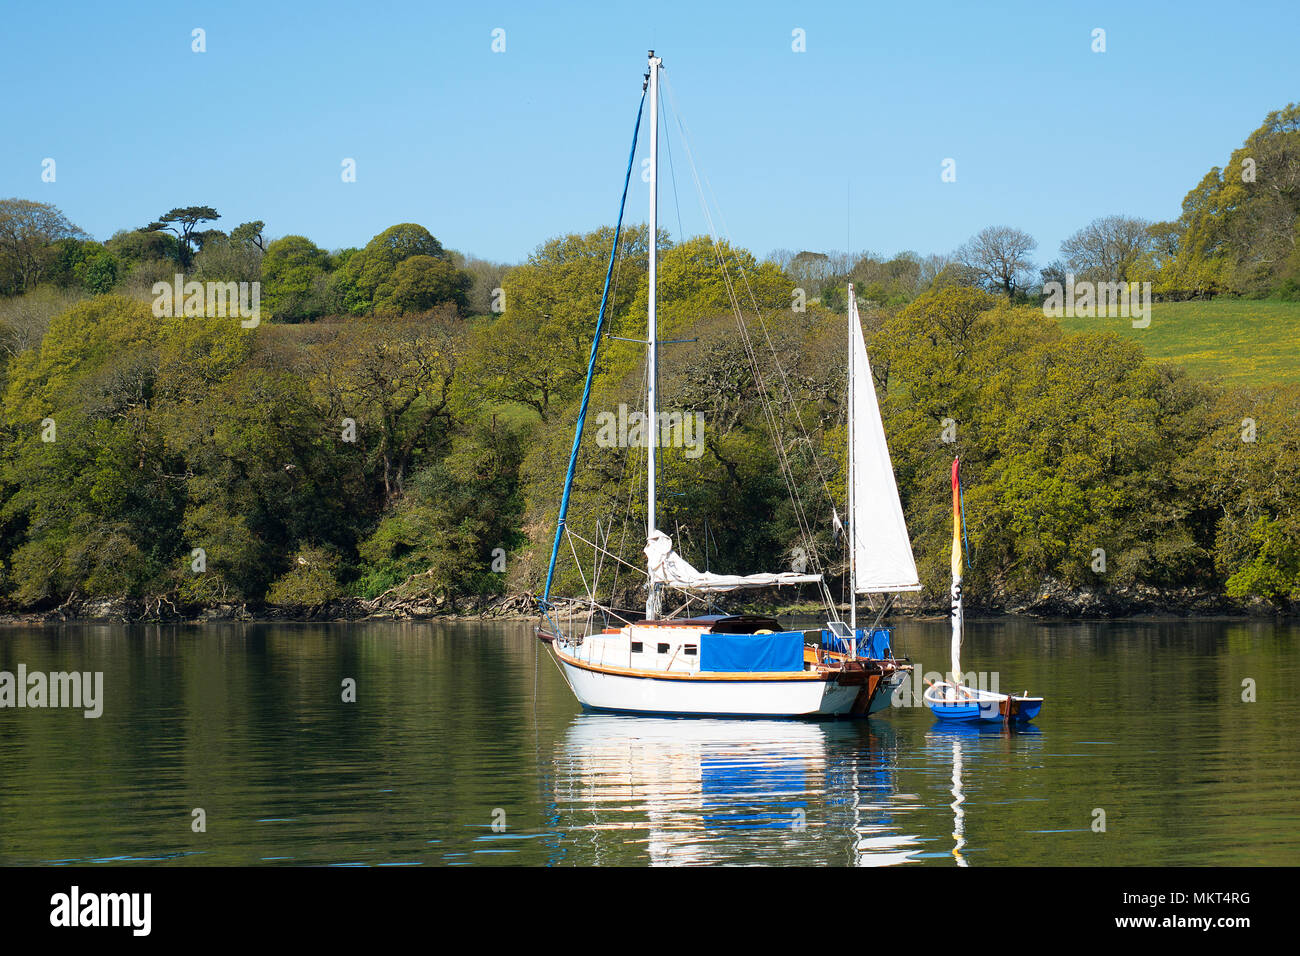 yacht moored in a creek off the helford river, cornwall, england, britain, uk. - Stock Image